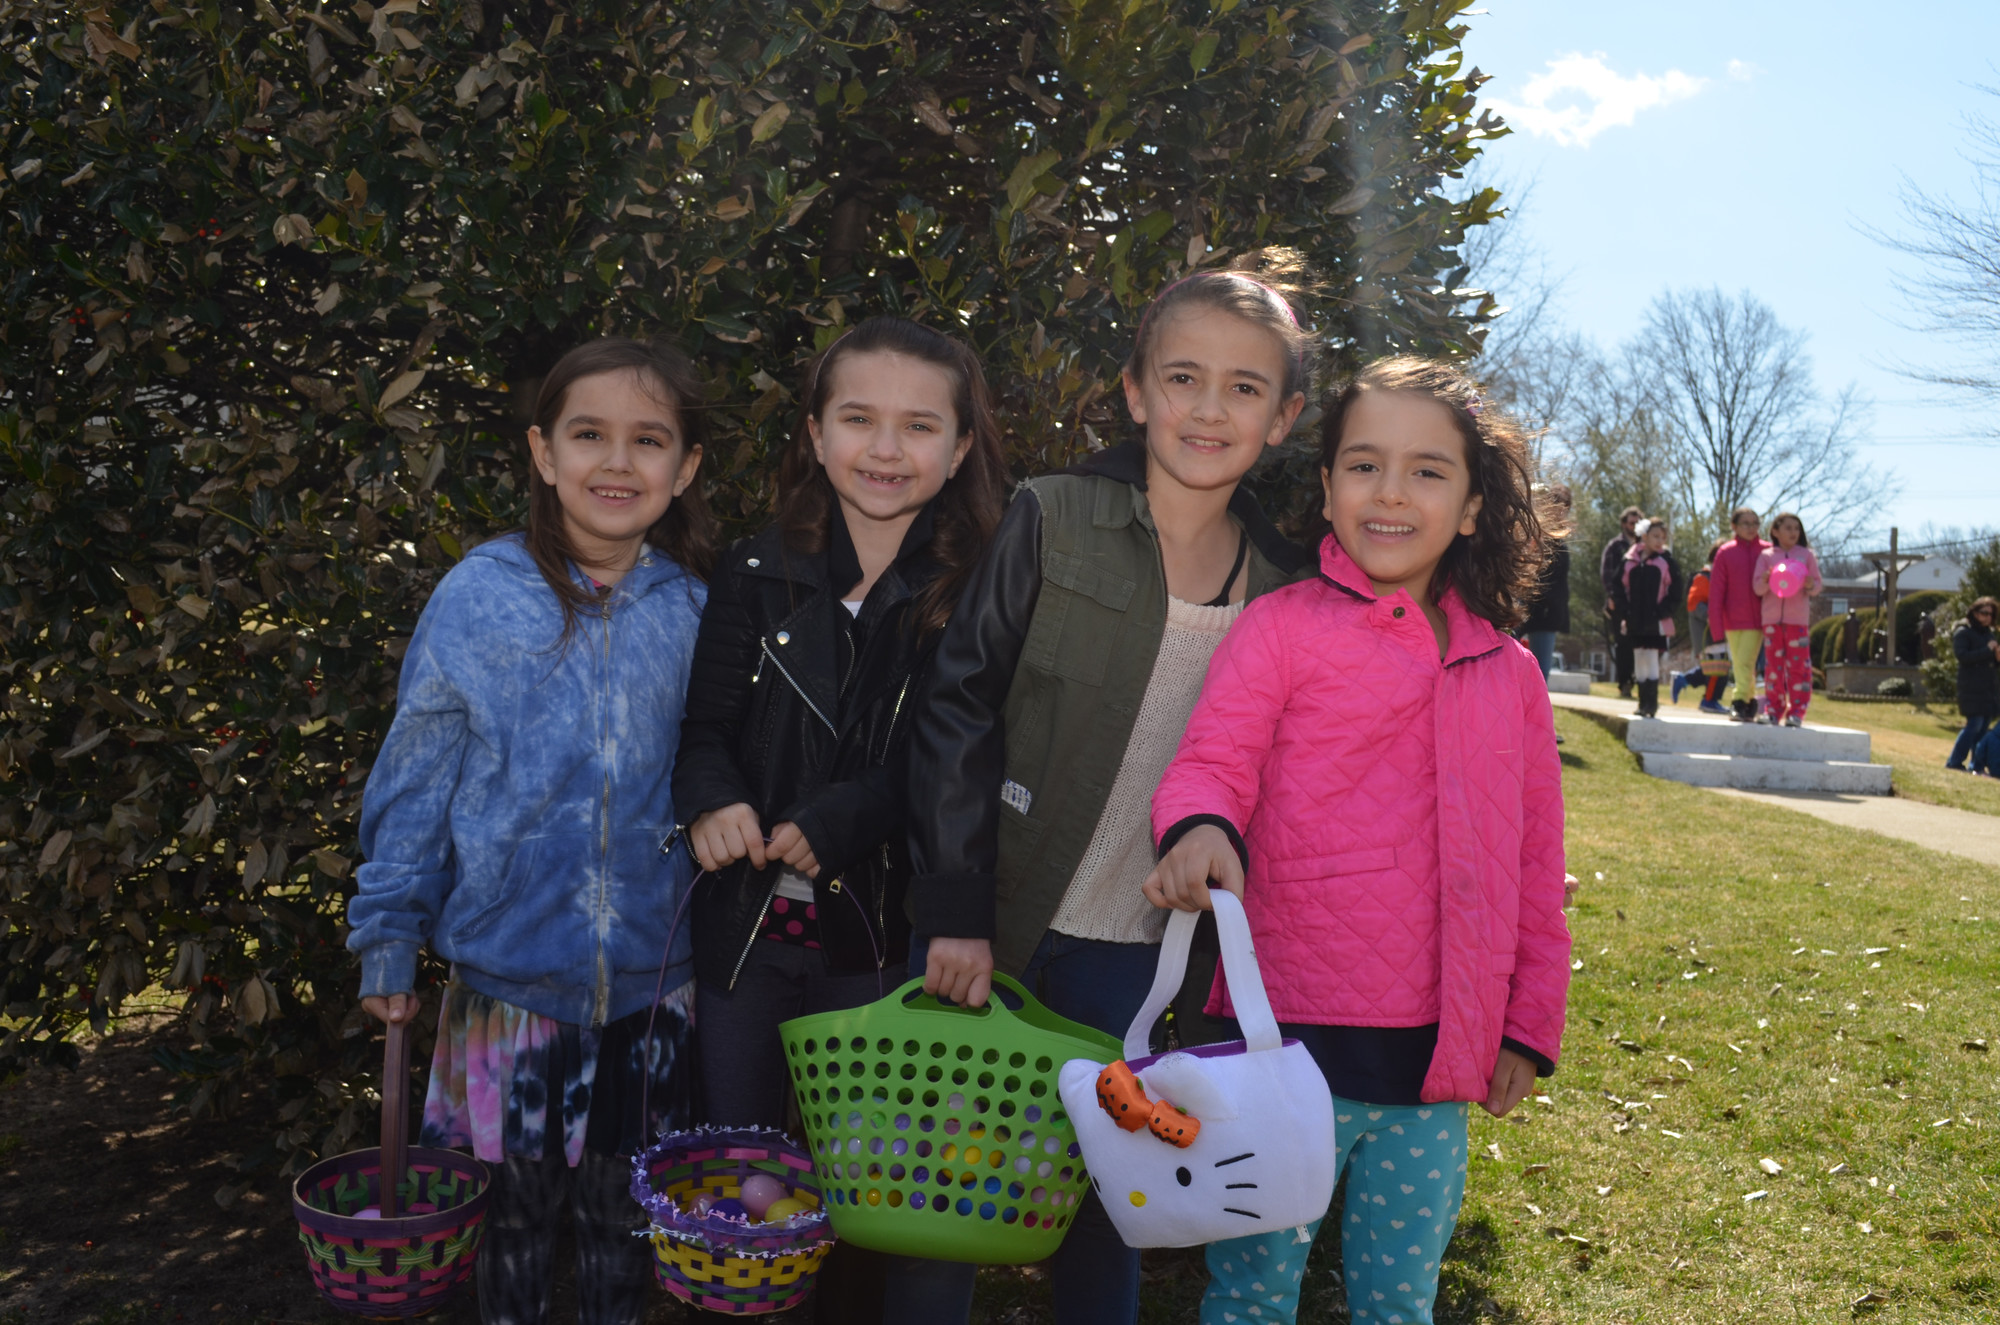 The egg hunt was good to sisters Lore, 6, Gabriella, 7, and Jule, 8, Villalba and friends Francesca Garcia Rocha, 6, all Hewlett residents as they showed off their baskets.